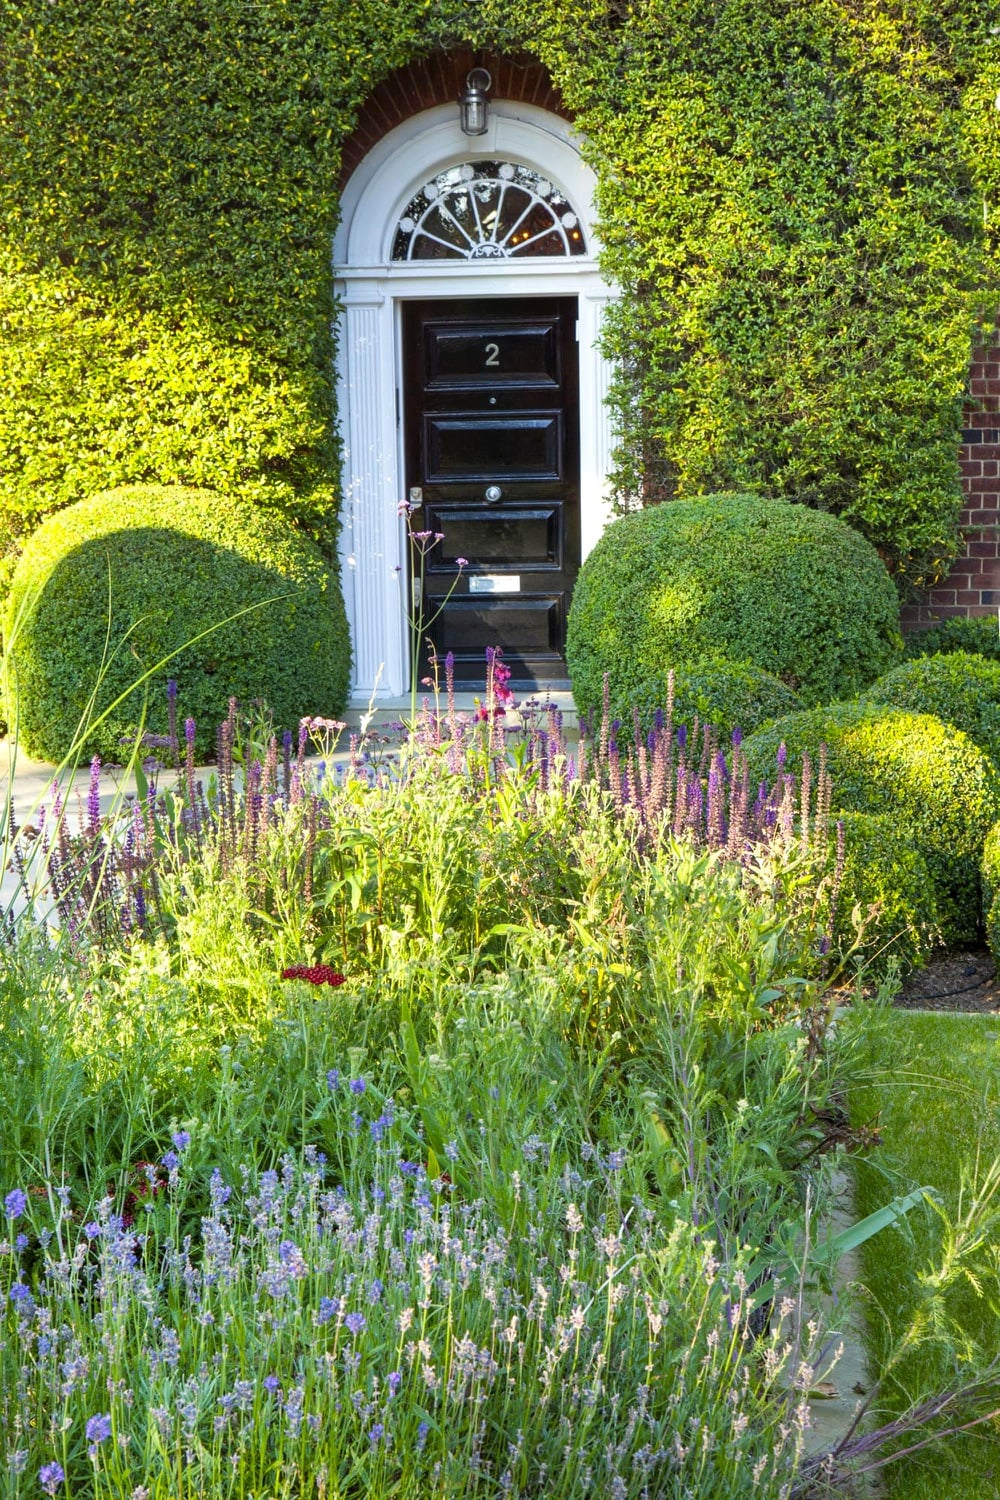 Sweet Contact  Lynne Marcus Garden Design London With Glamorous Lynne Has Designed Gardens Throughout London The Home Counties And Further  Afield In Oxfordshire Hampshire And Gloucestershire With Endearing Woodlands Garden Center Also Garden Bird Wallpaper In Addition Elm Court Garden Centre And The Harp Pub Covent Garden As Well As Native Plants And Wildlife Gardens Additionally How To Level A Garden Lawn From Lynnemarcuscom With   Glamorous Contact  Lynne Marcus Garden Design London With Endearing Lynne Has Designed Gardens Throughout London The Home Counties And Further  Afield In Oxfordshire Hampshire And Gloucestershire And Sweet Woodlands Garden Center Also Garden Bird Wallpaper In Addition Elm Court Garden Centre From Lynnemarcuscom